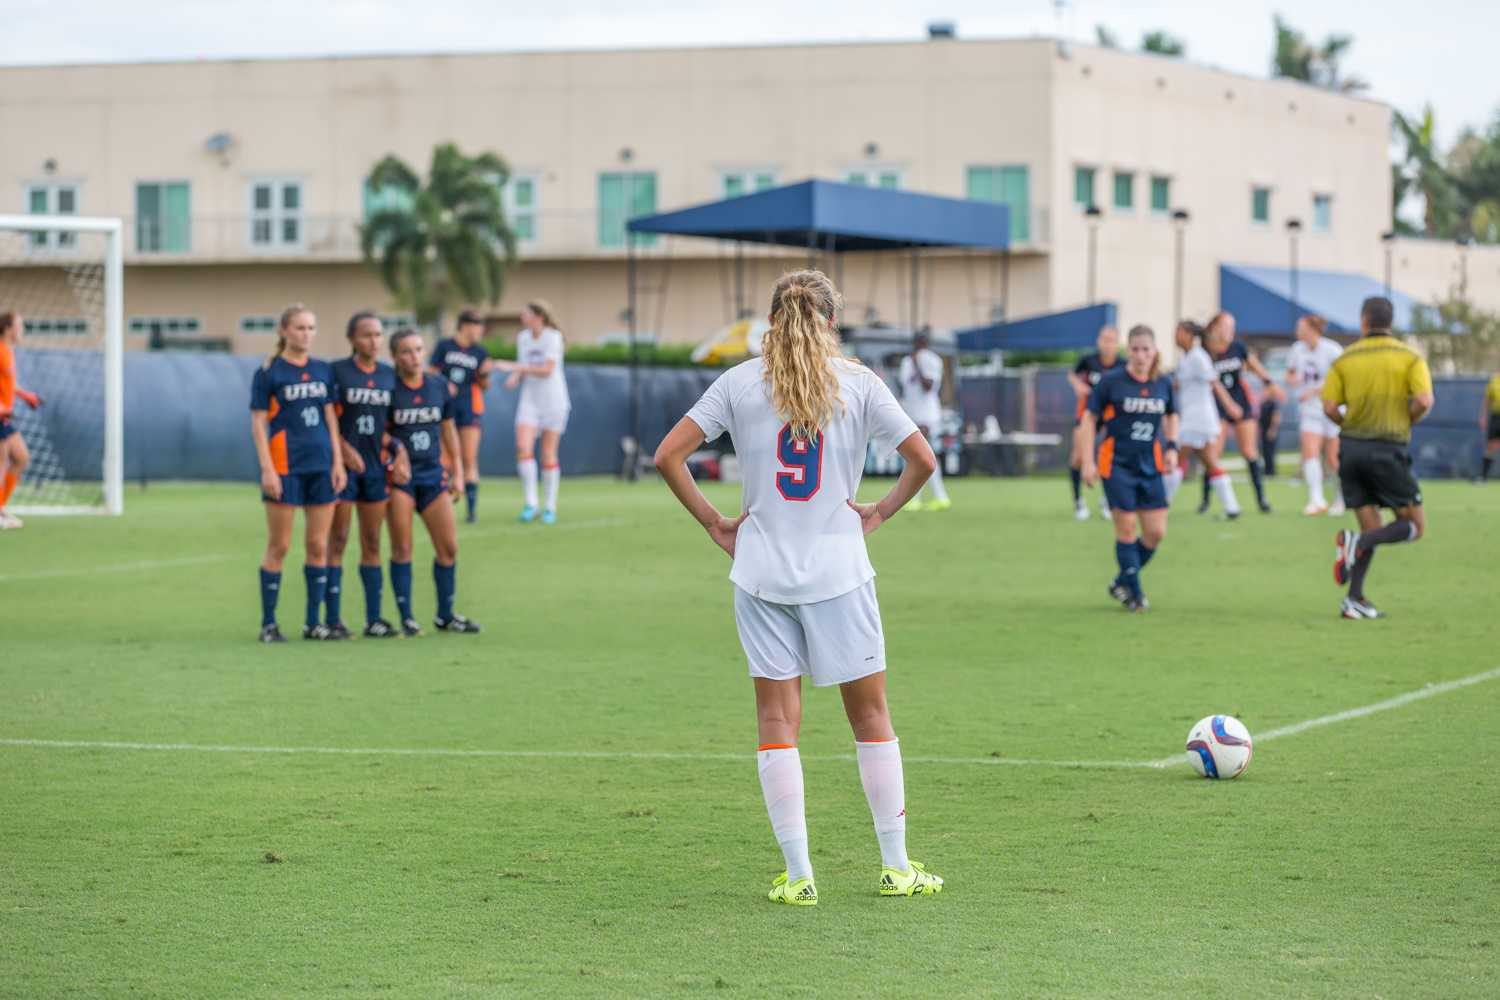 Senior midfielder Claire Emslie (9) waits for the whistle to take her free kick from outside the box during the Owls game versus UTSA on Sept. 27. Emslie tied the program record for goals scored with two scores this weekend, pushing her career total to 28. Brandon Harrington | Photo Editor